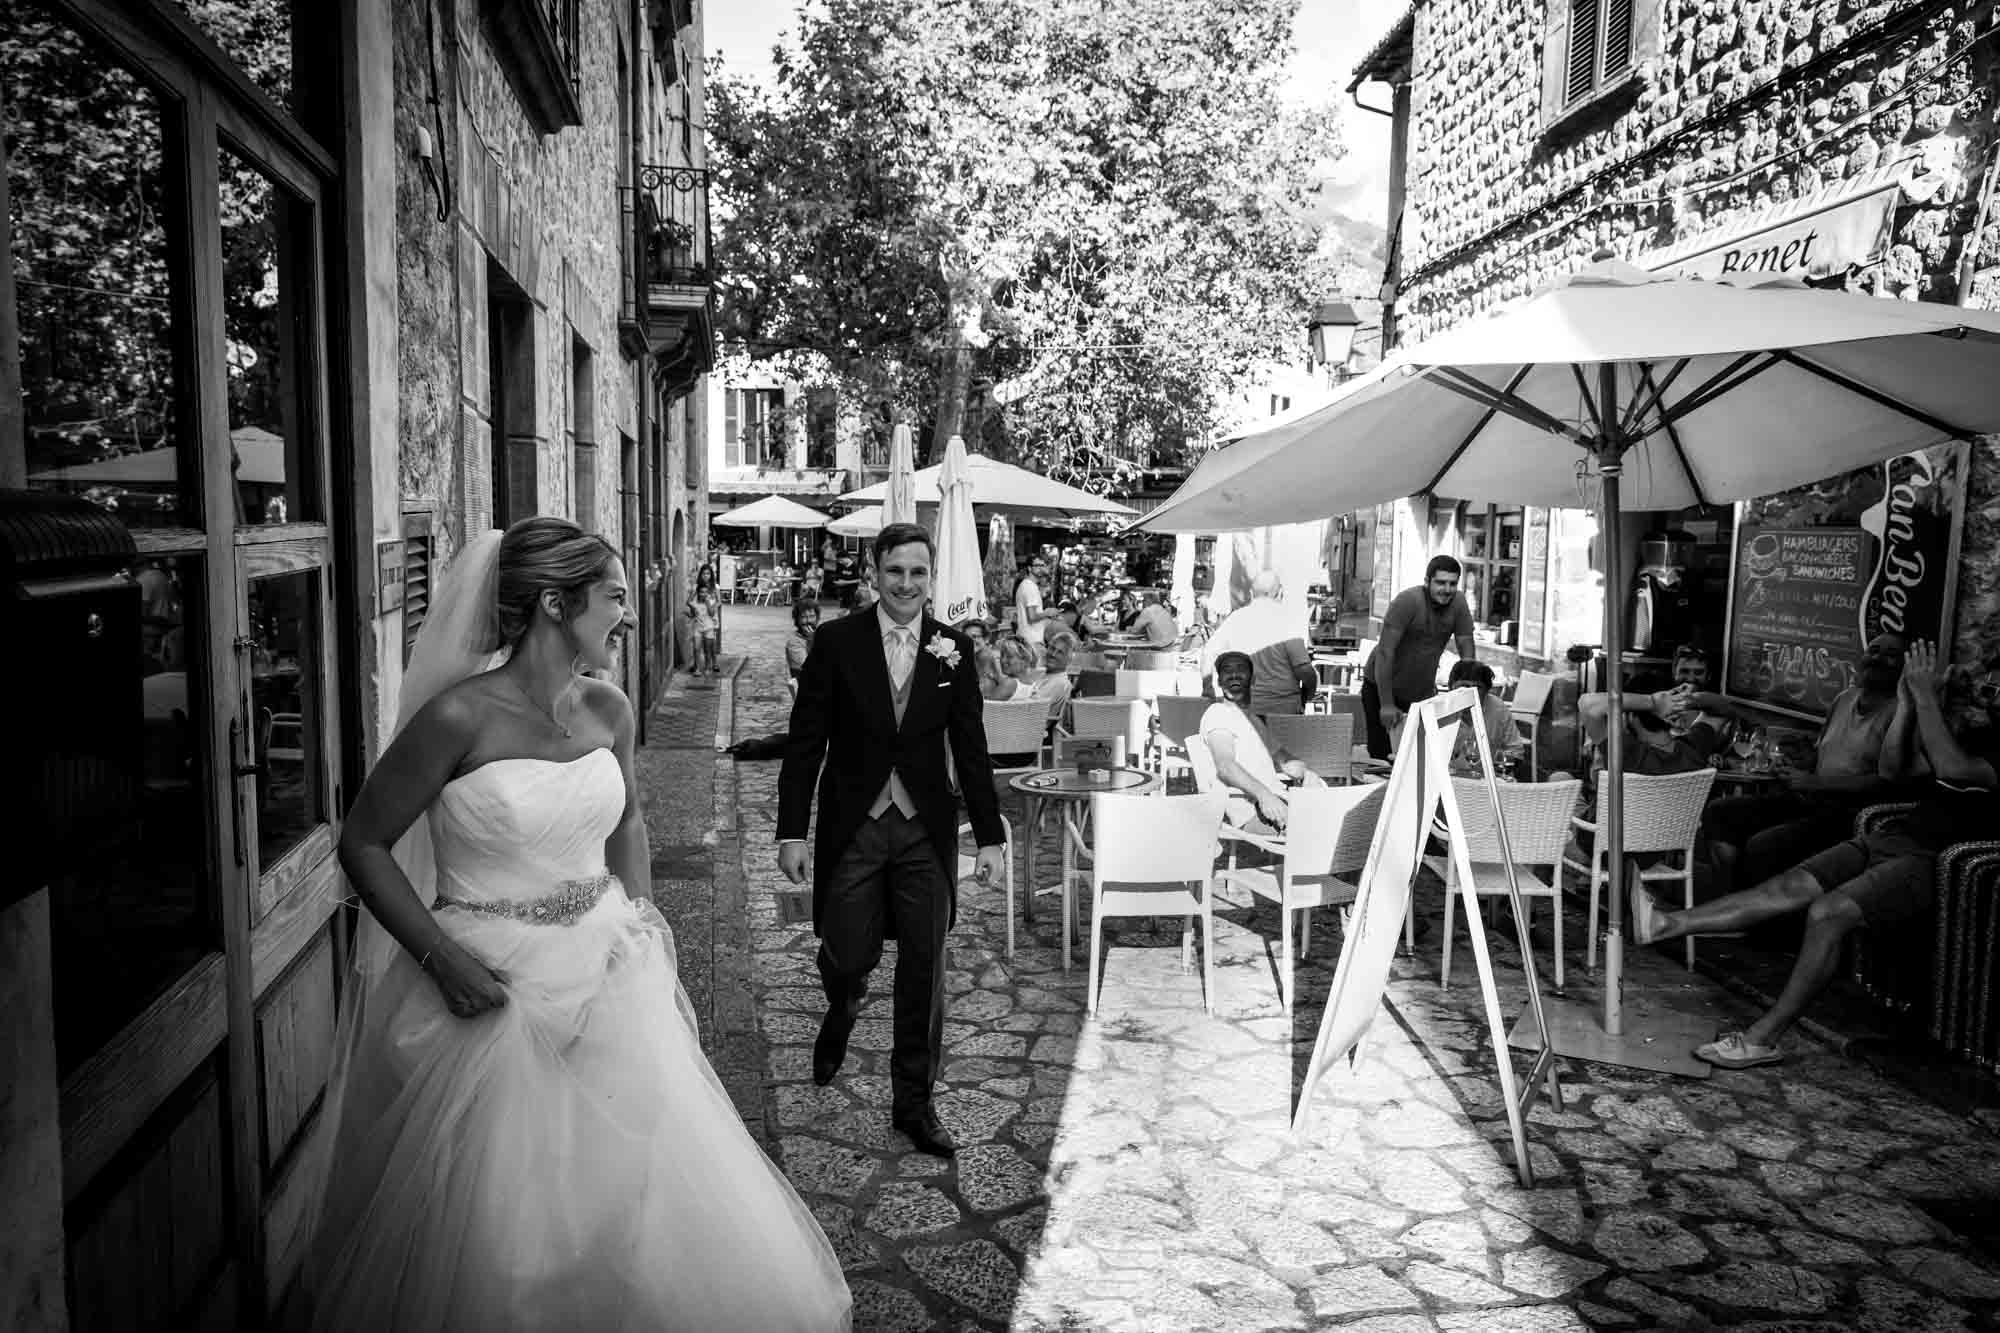 A cheer for the bride and groom after their Mallorca wedding